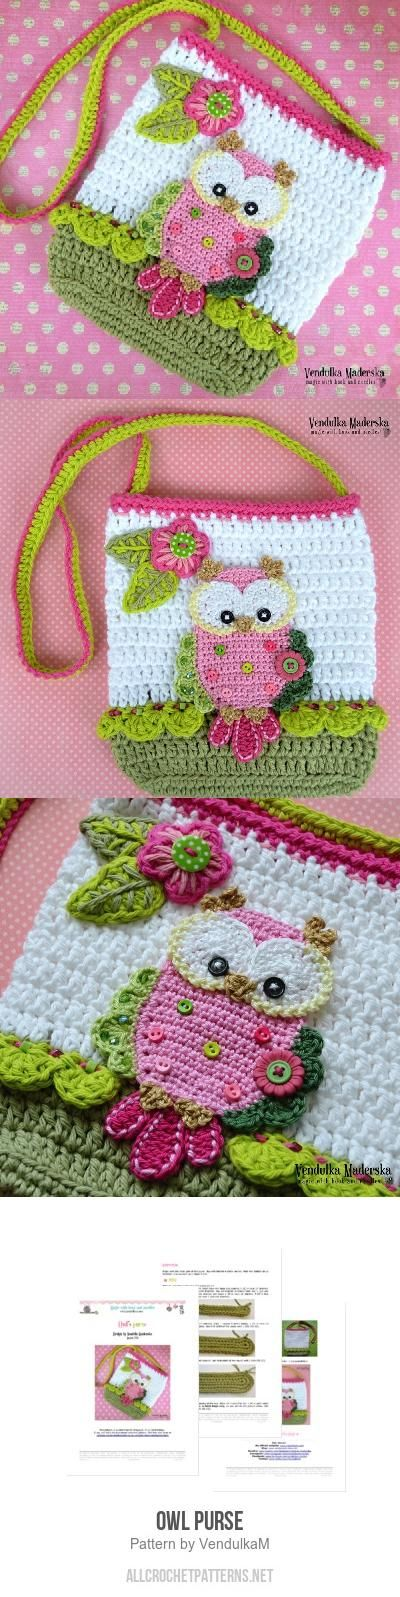 Owl purse crochet pattern